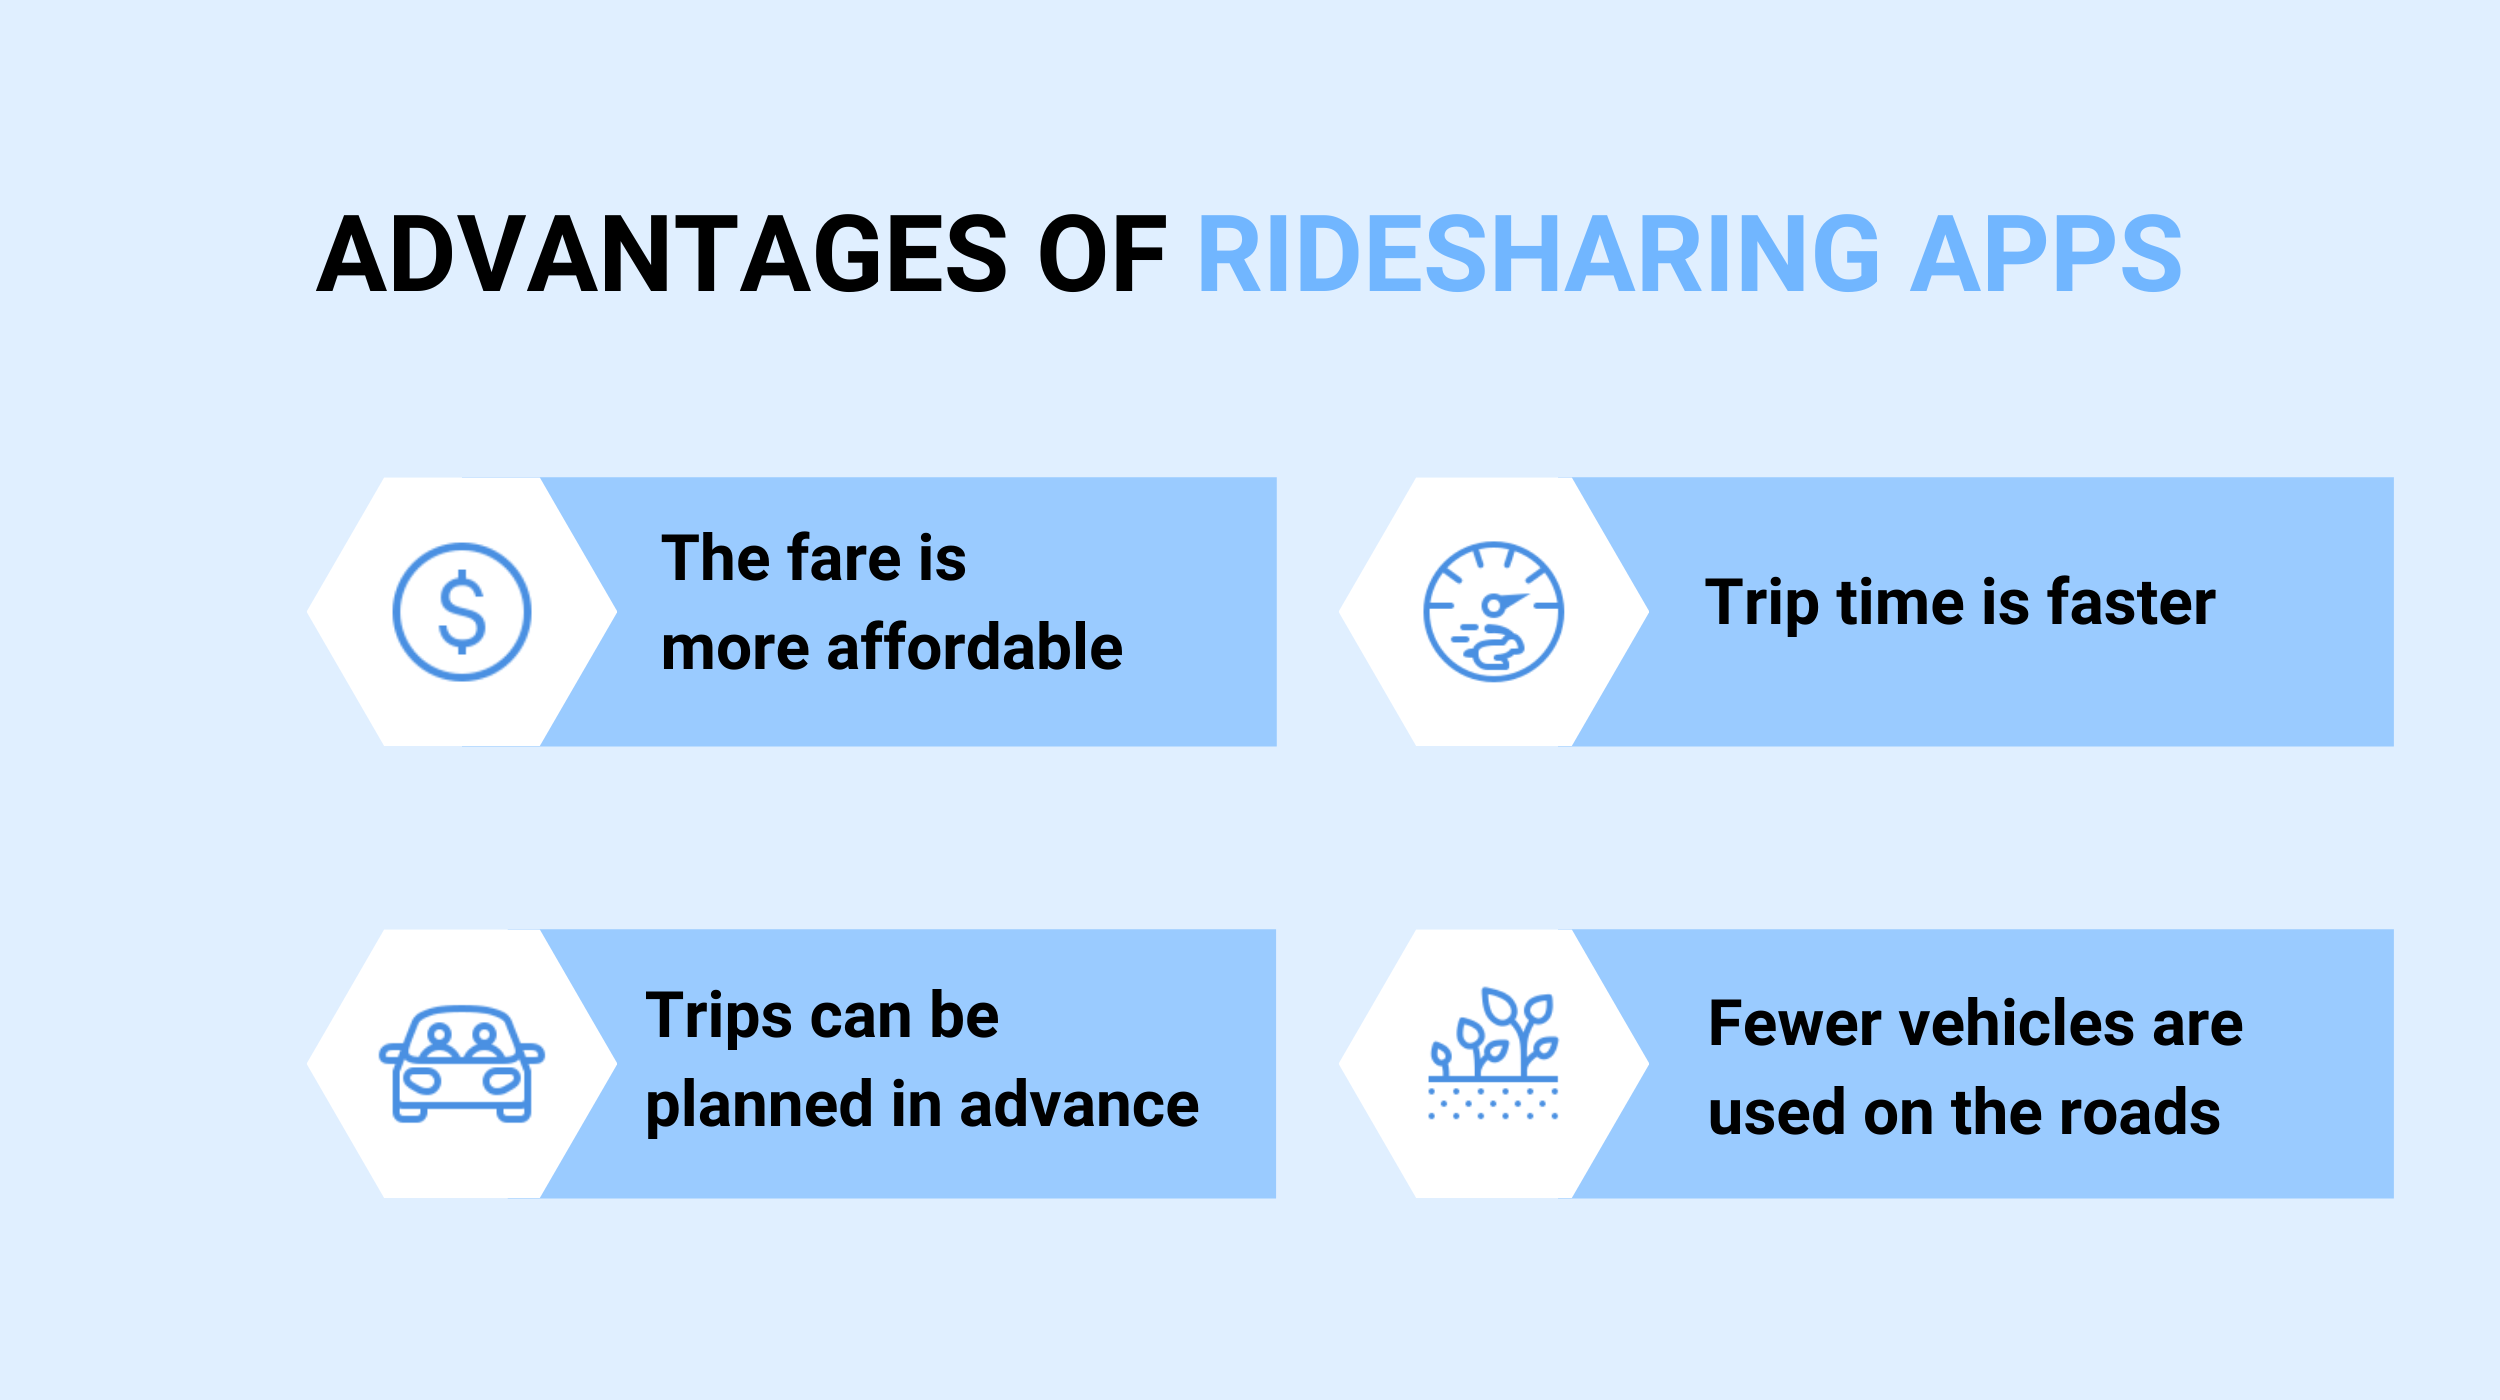 Advantages of ridesharing apps